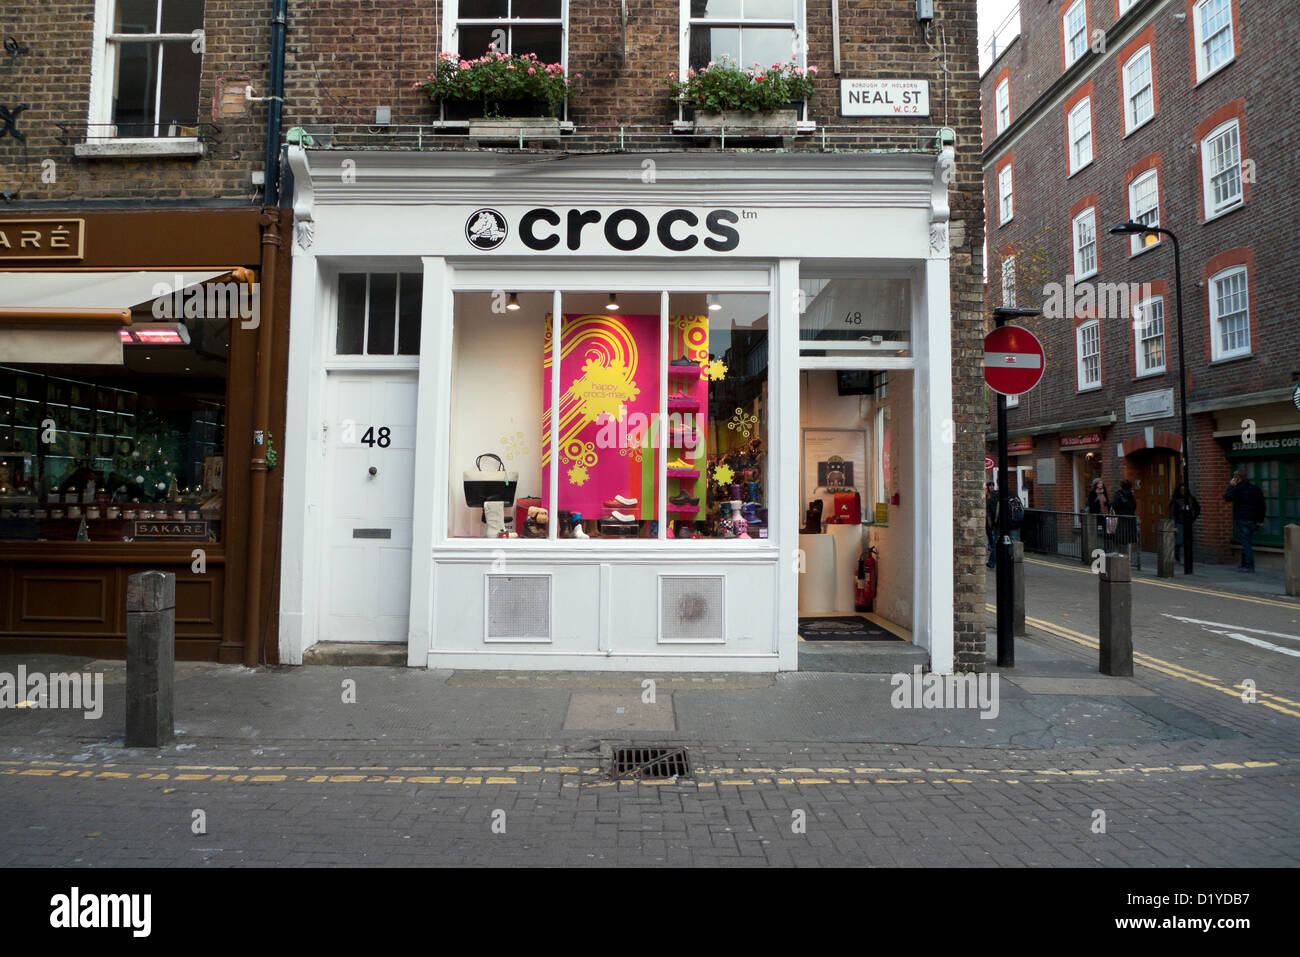 52a099c4631e74 Crocs shoe shop in Neal Street